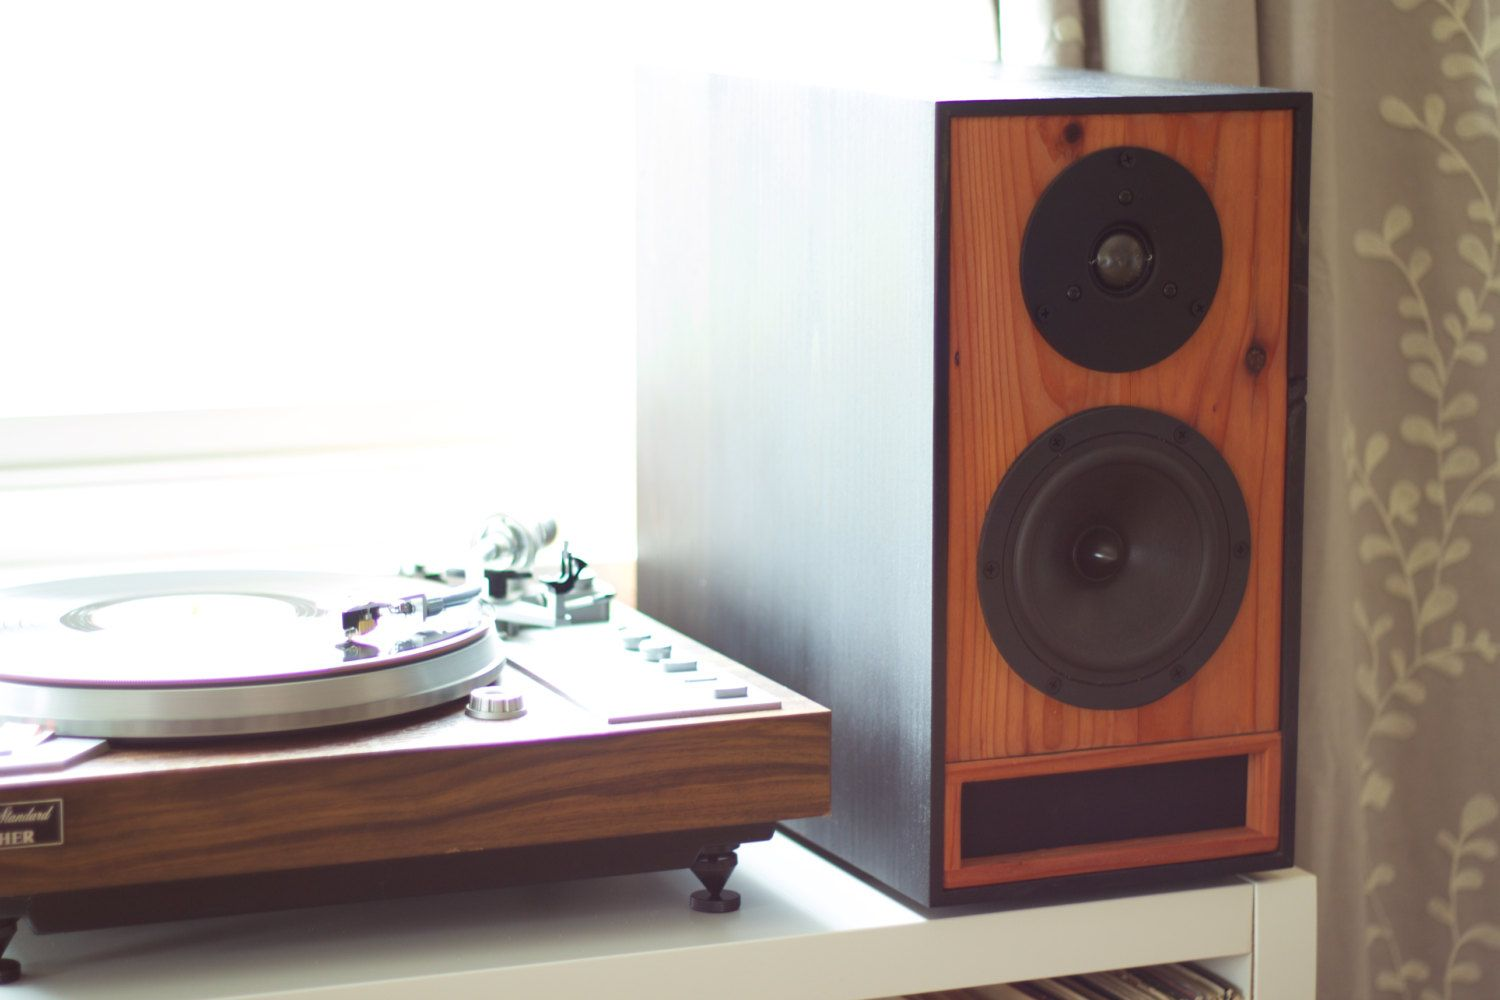 Redwood Bookshelf Speakers - Pro Level T-Line Speaker Design ...